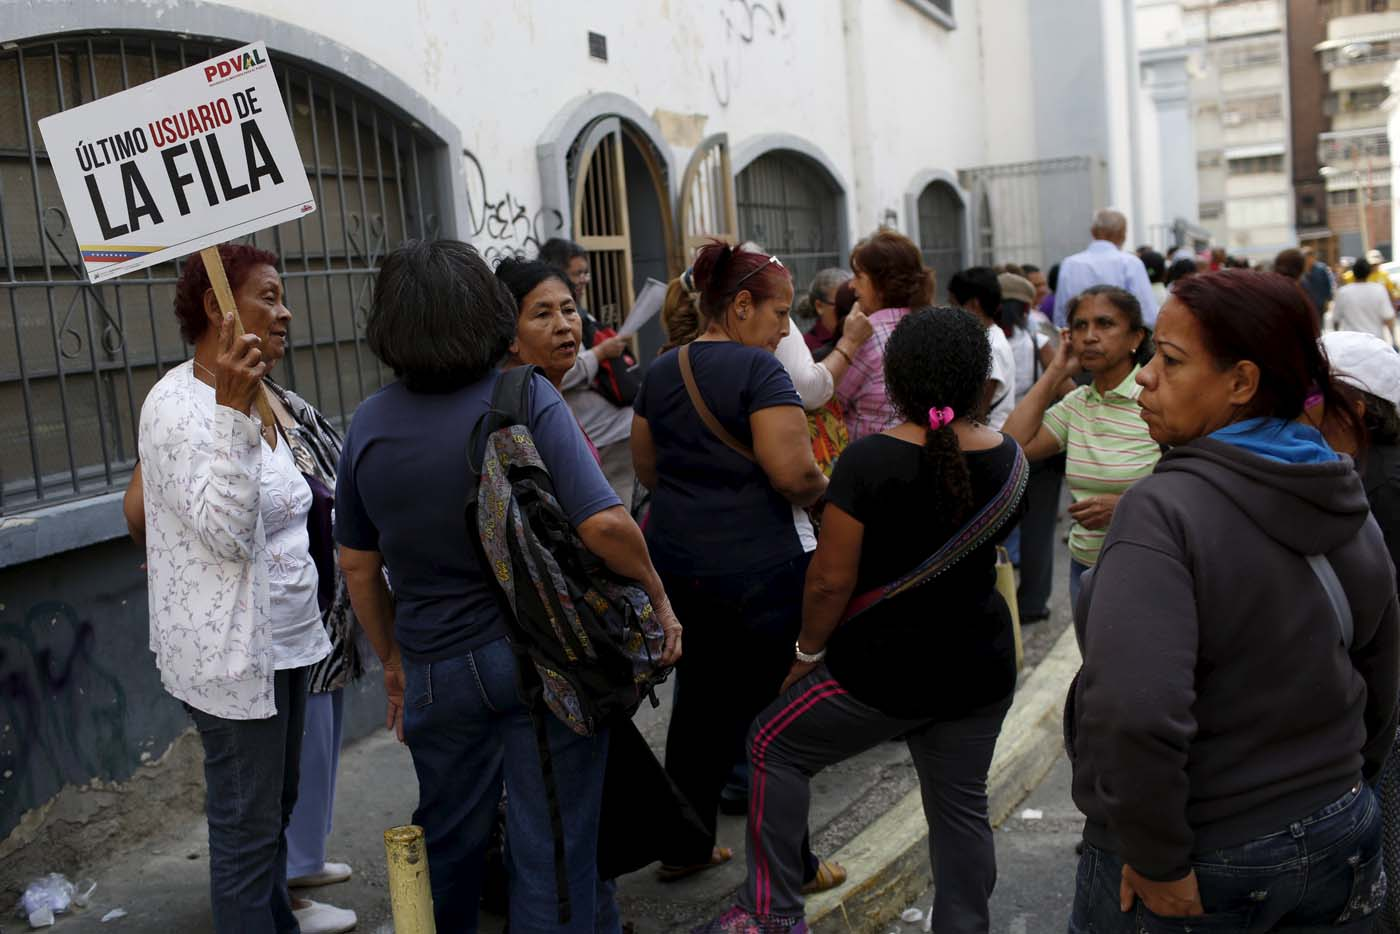 """A elder woman holds a placard that reads, """"The last user of the line"""", while she waits next to others in a line for the elderly outside a PDVAL, a state-run supermarket, to buy chicken in Caracas January 22, 2016.  Venezuela's opposition refused on Friday to approve President Nicolas Maduro's """"economic emergency"""" decree in Congress, saying it offered no solutions for the OPEC nation's increasingly disastrous recession. Underlining the grave situation in Venezuela, where a plunge in oil prices has compounded dysfunctional policies, the International Monetary Fund on Friday forecast an 8 percent drop in gross domestic product and 720 percent inflation this year. REUTERS/Carlos Garcia Rawlins"""